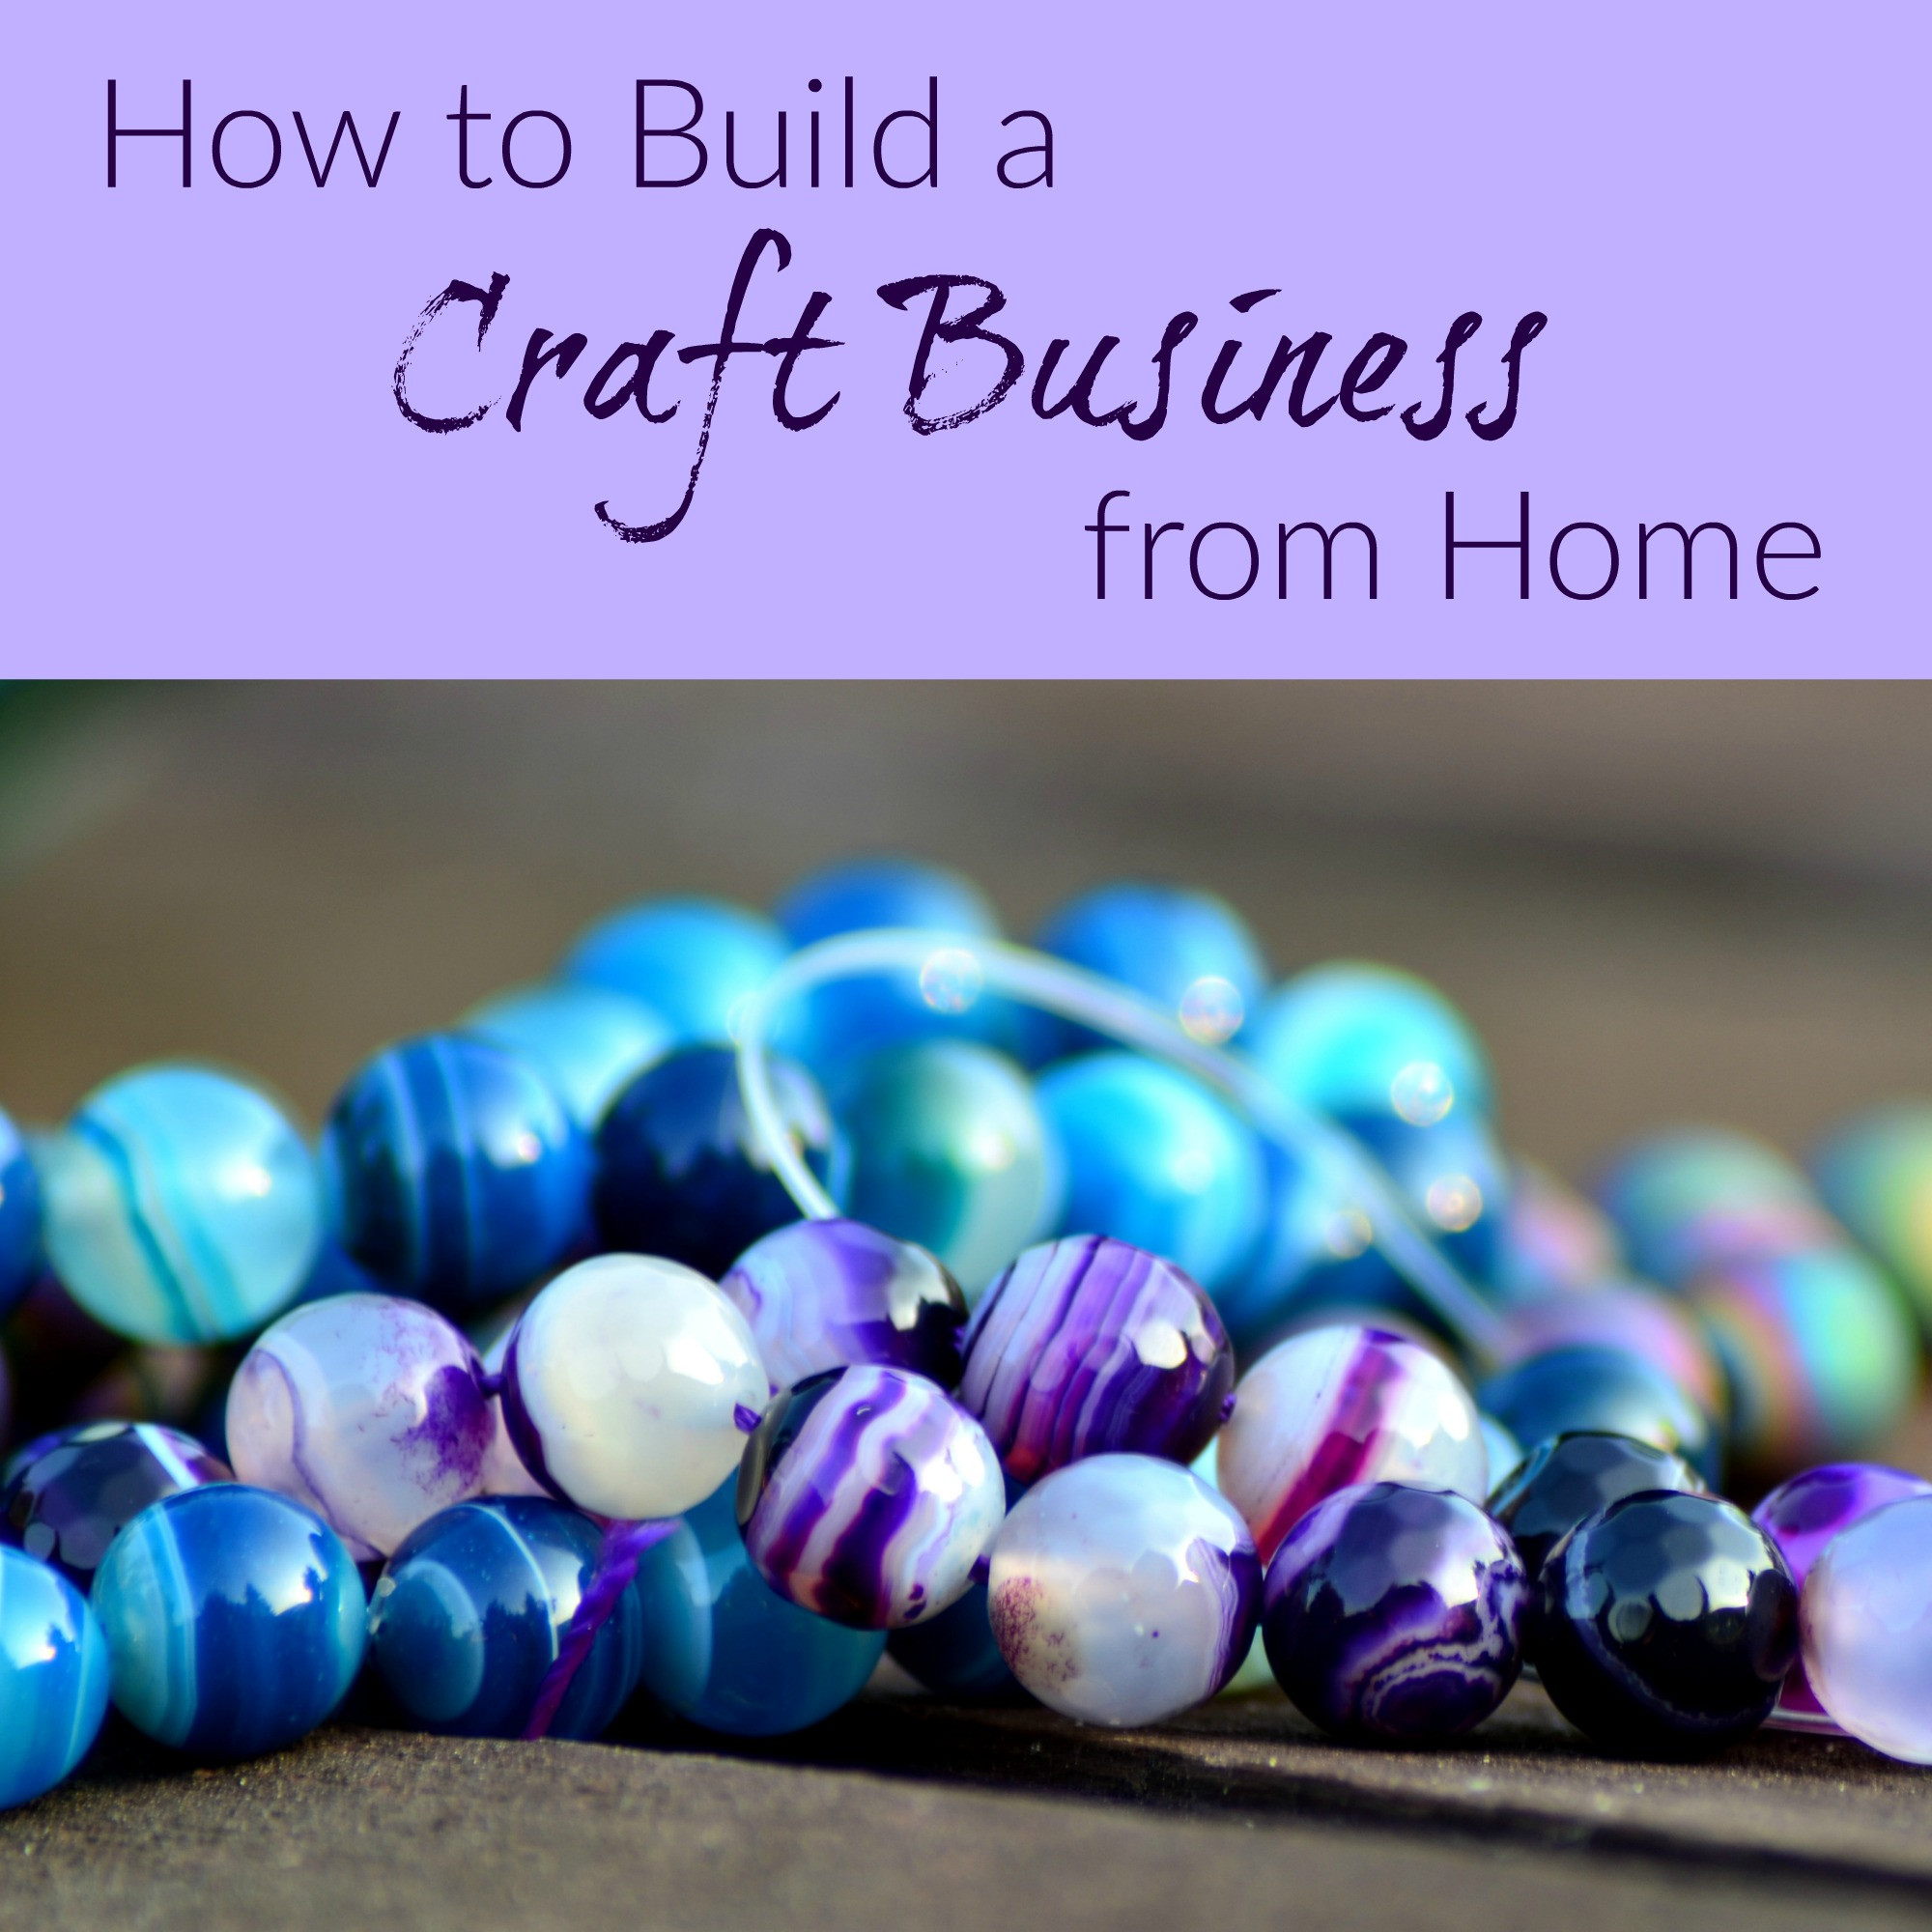 How to Build a Craft Business from Home